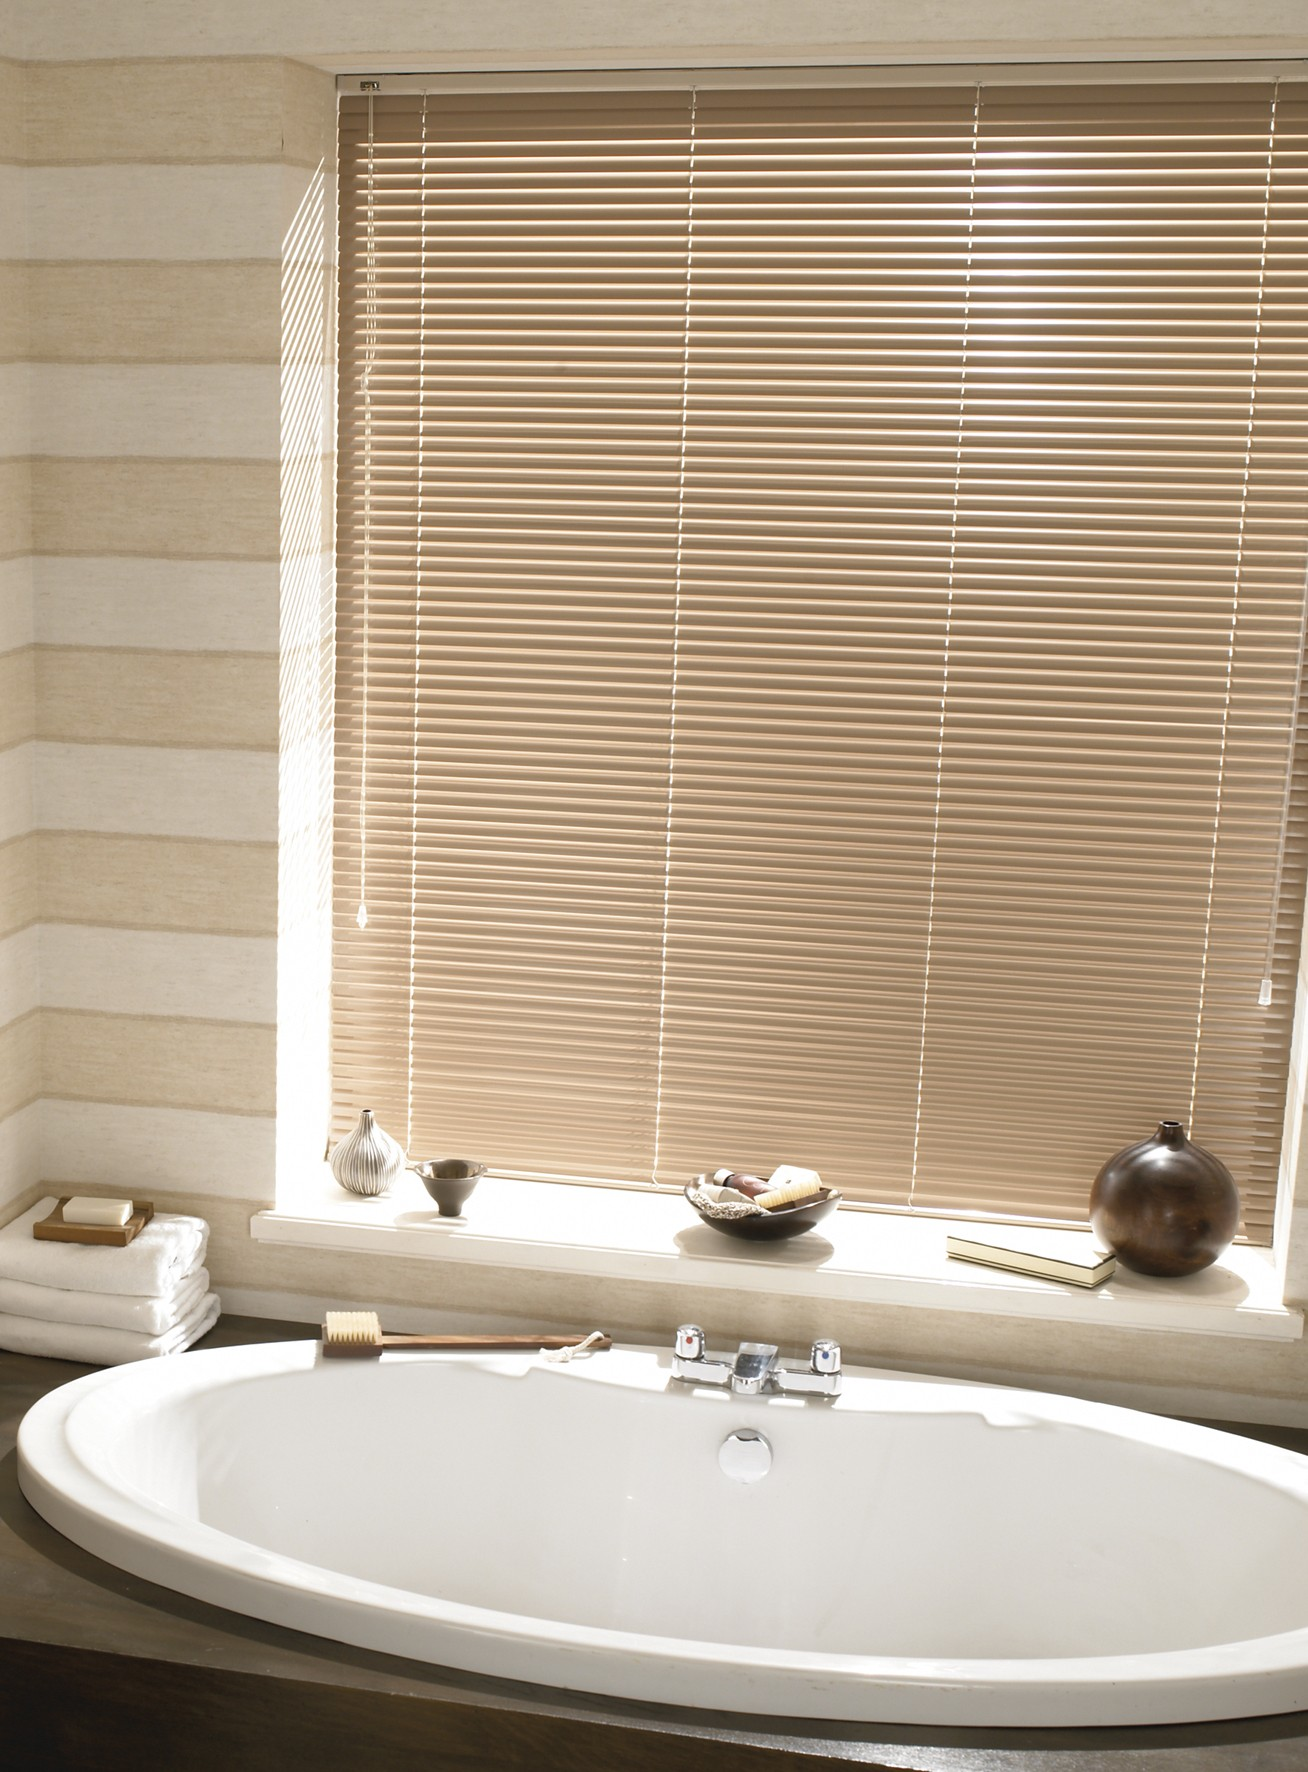 Best Place To Buy Window Blinds